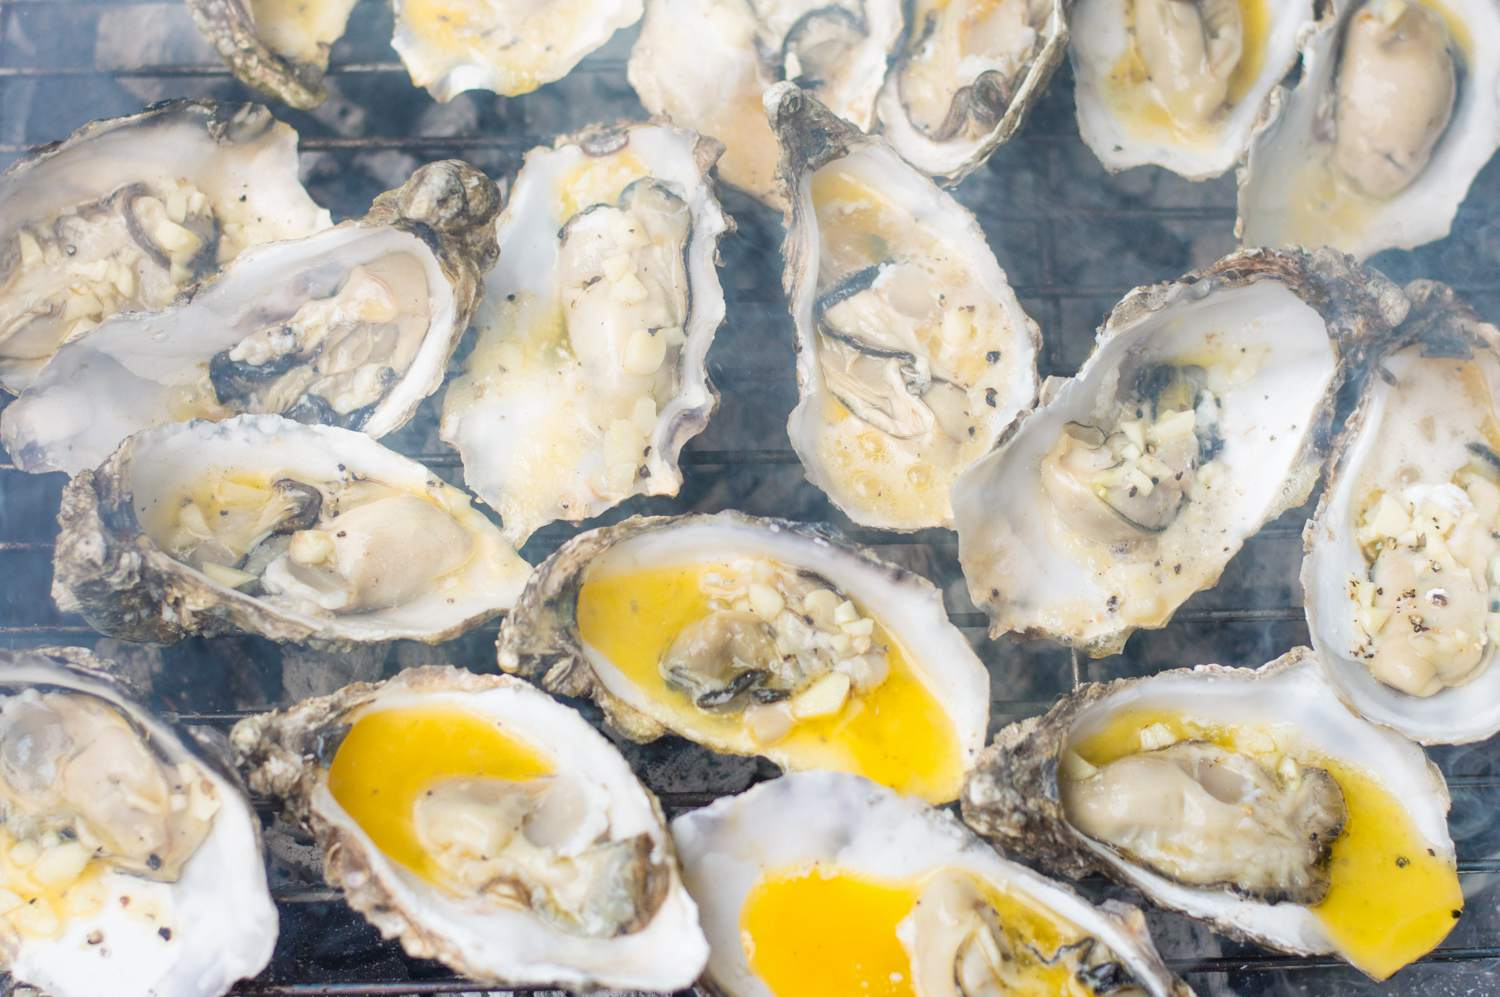 Official Drago's Charbroiled Oysters Recipe